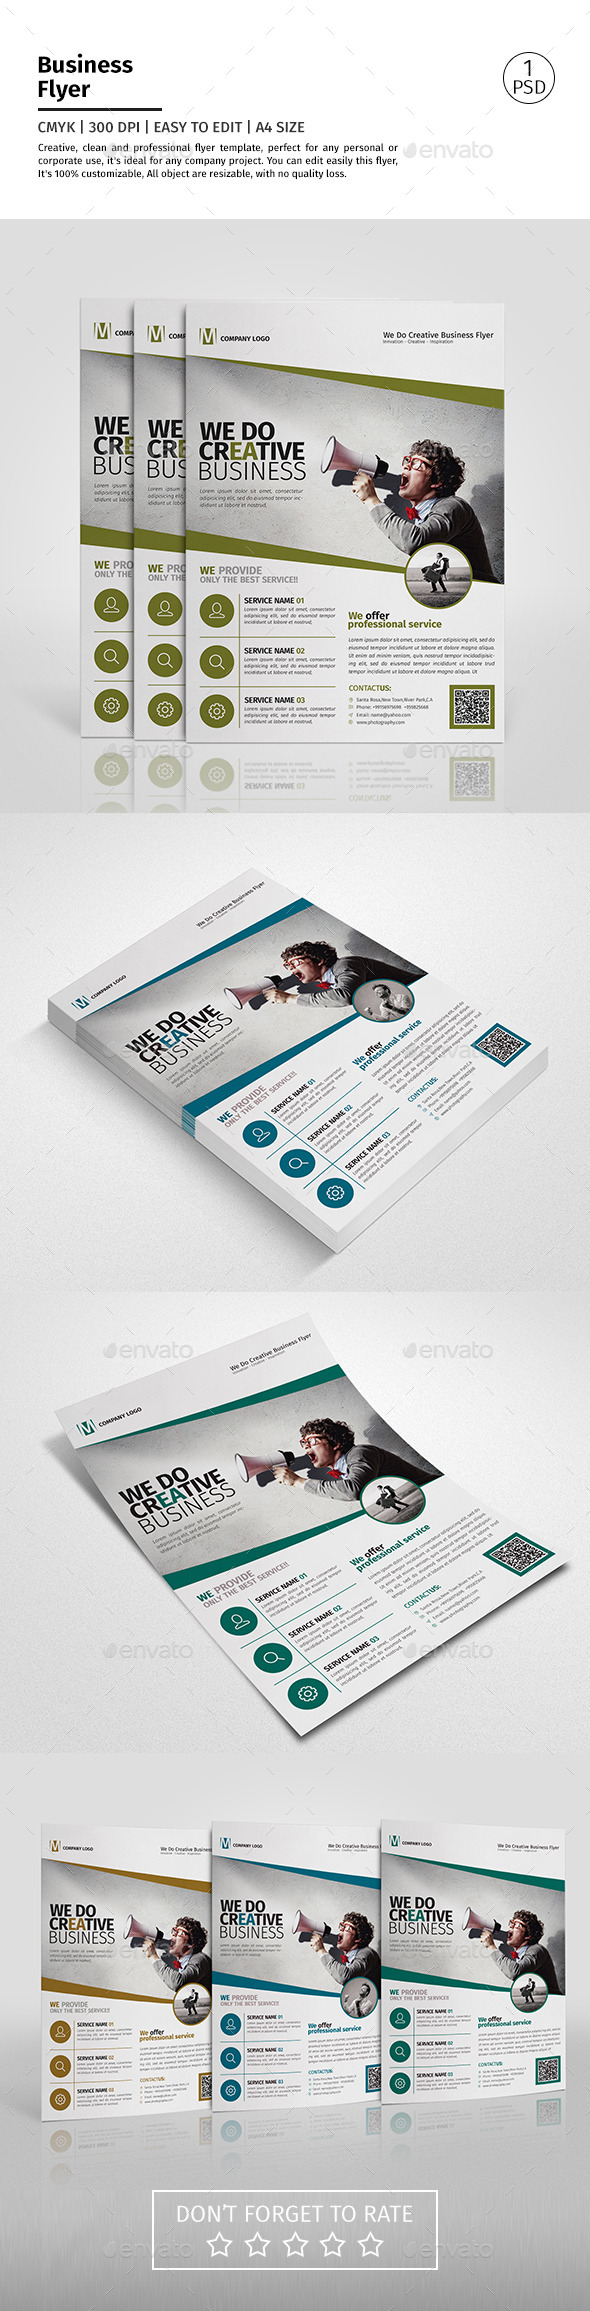 A4 Corporate Business Flyer Template Vol 04